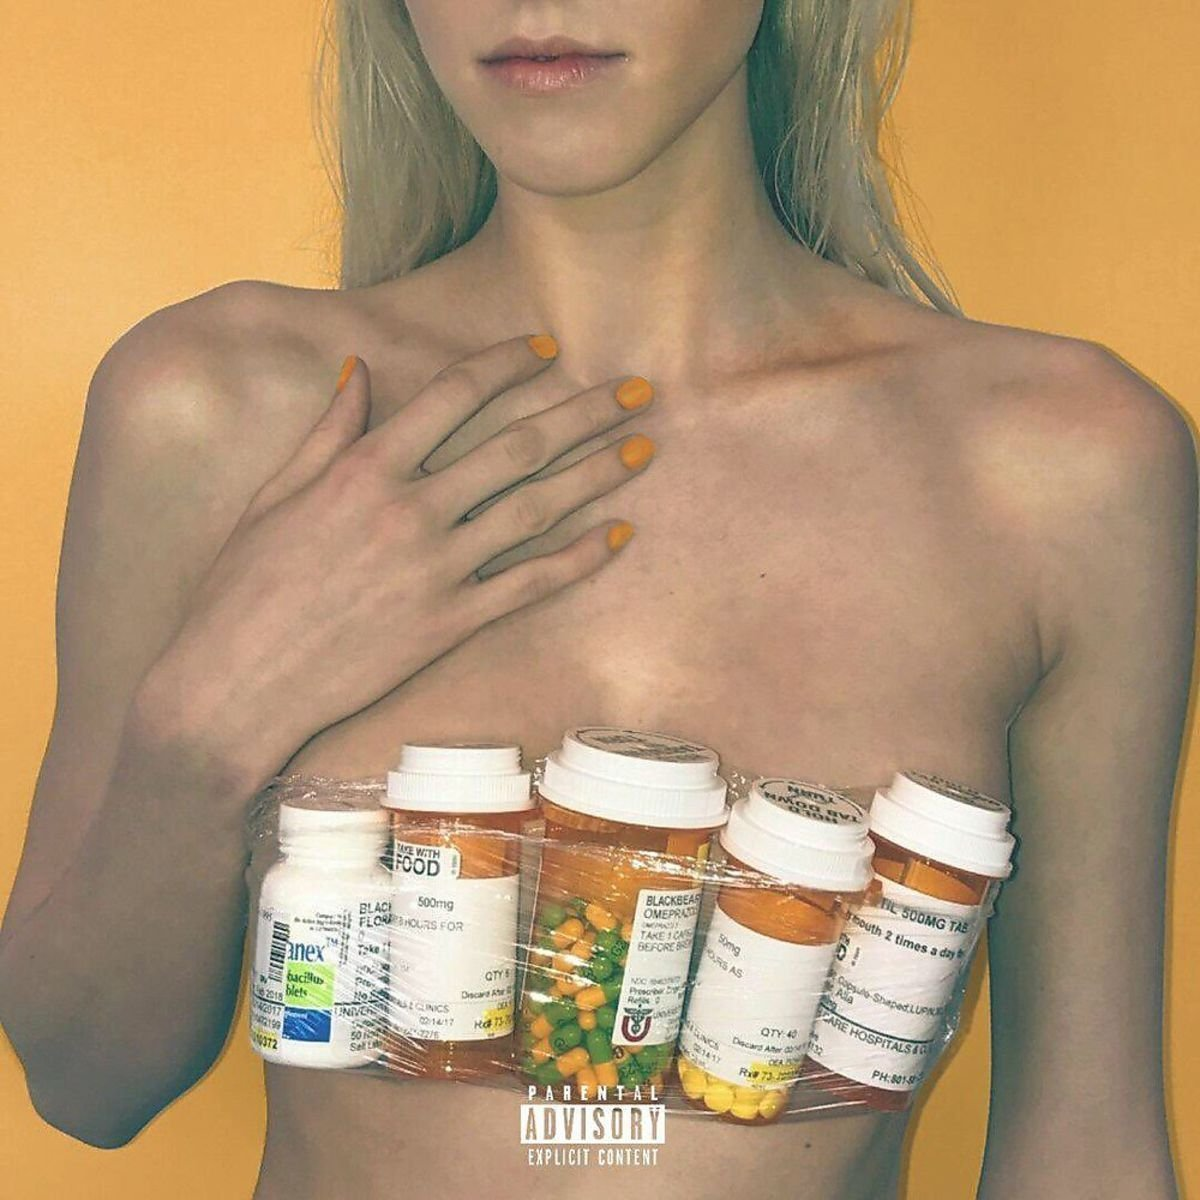 CD : Blackbear - Digital Druglord